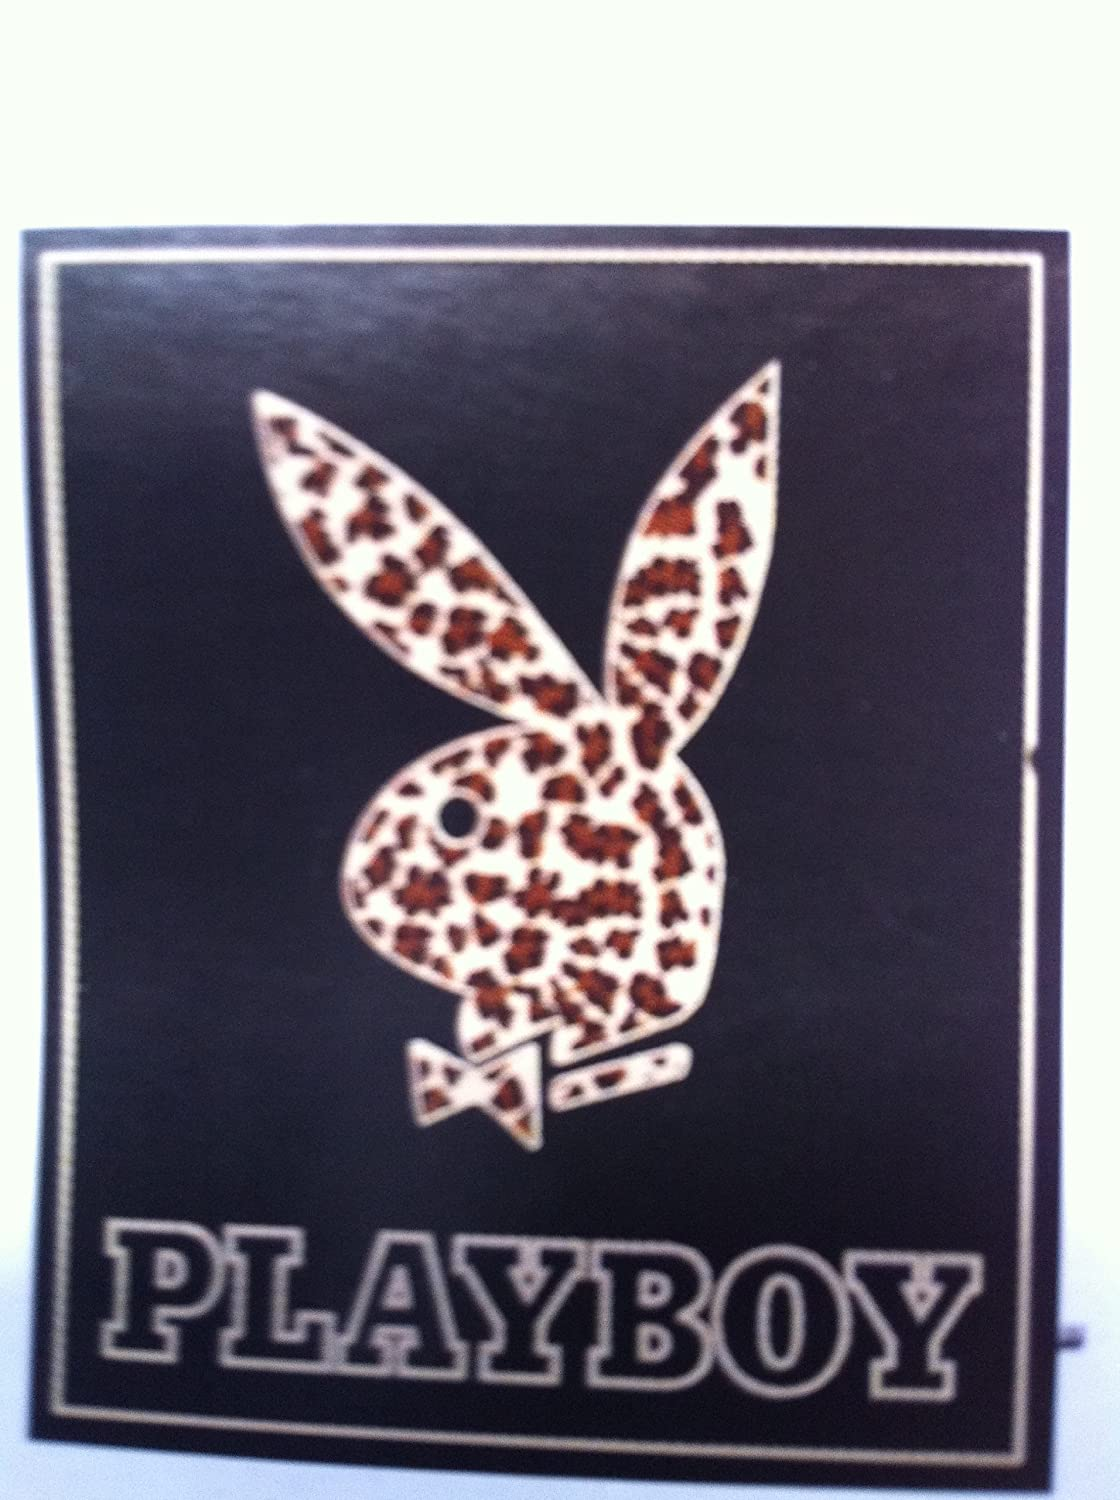 Playboy Leopard Print Throw Blanket 50